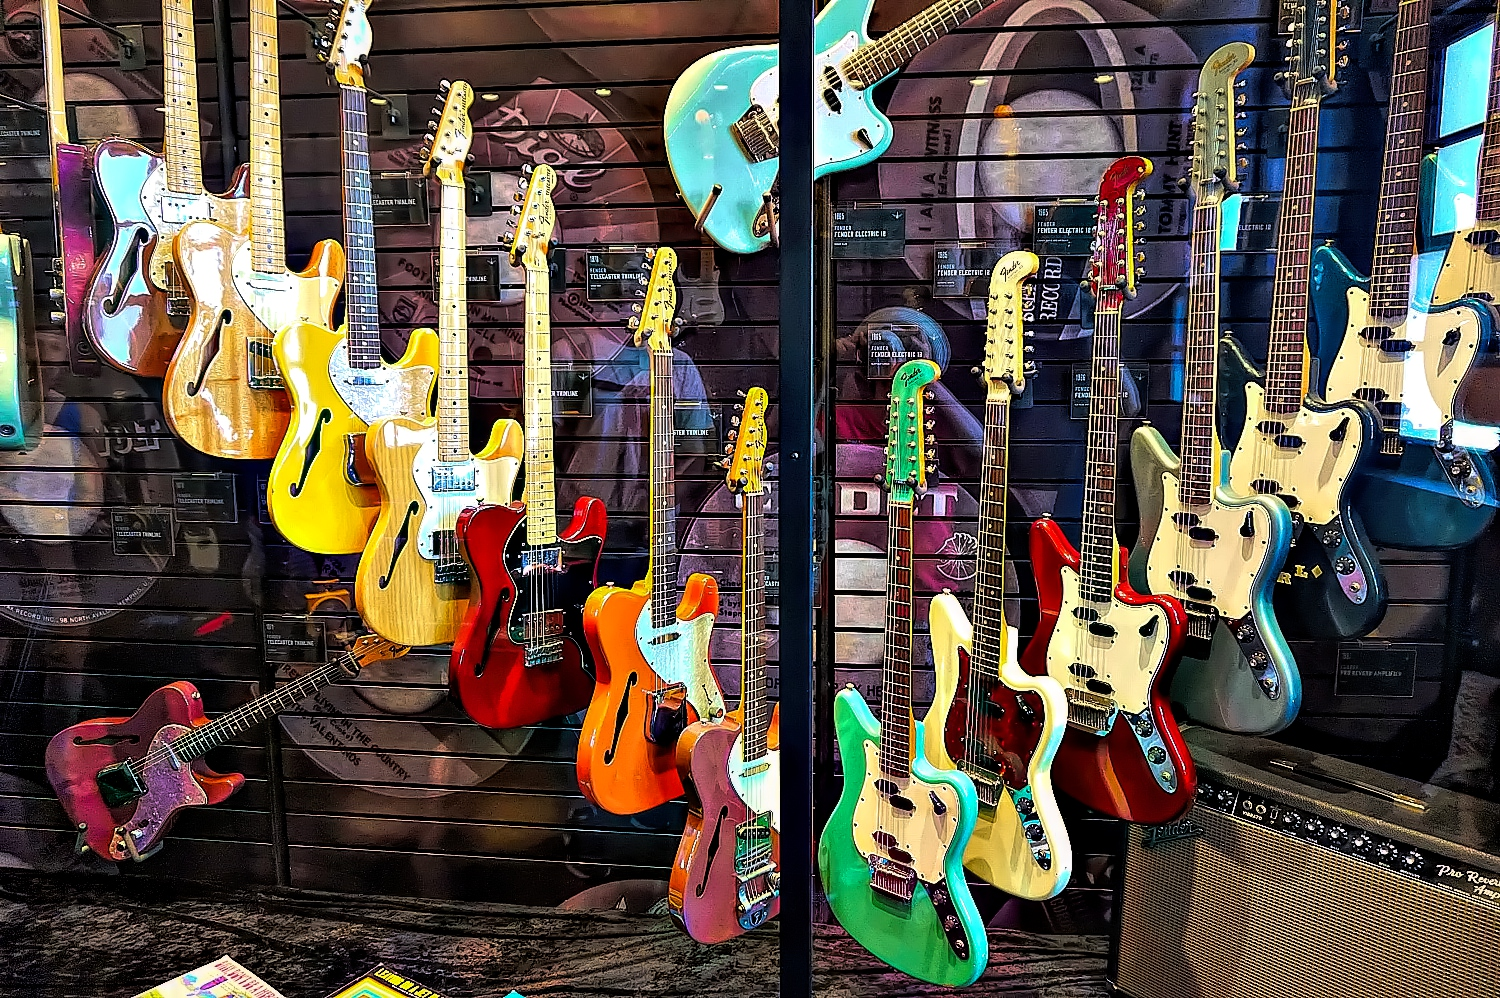 Songbirds Guitar Museum in Chattanooga, Tennessee.